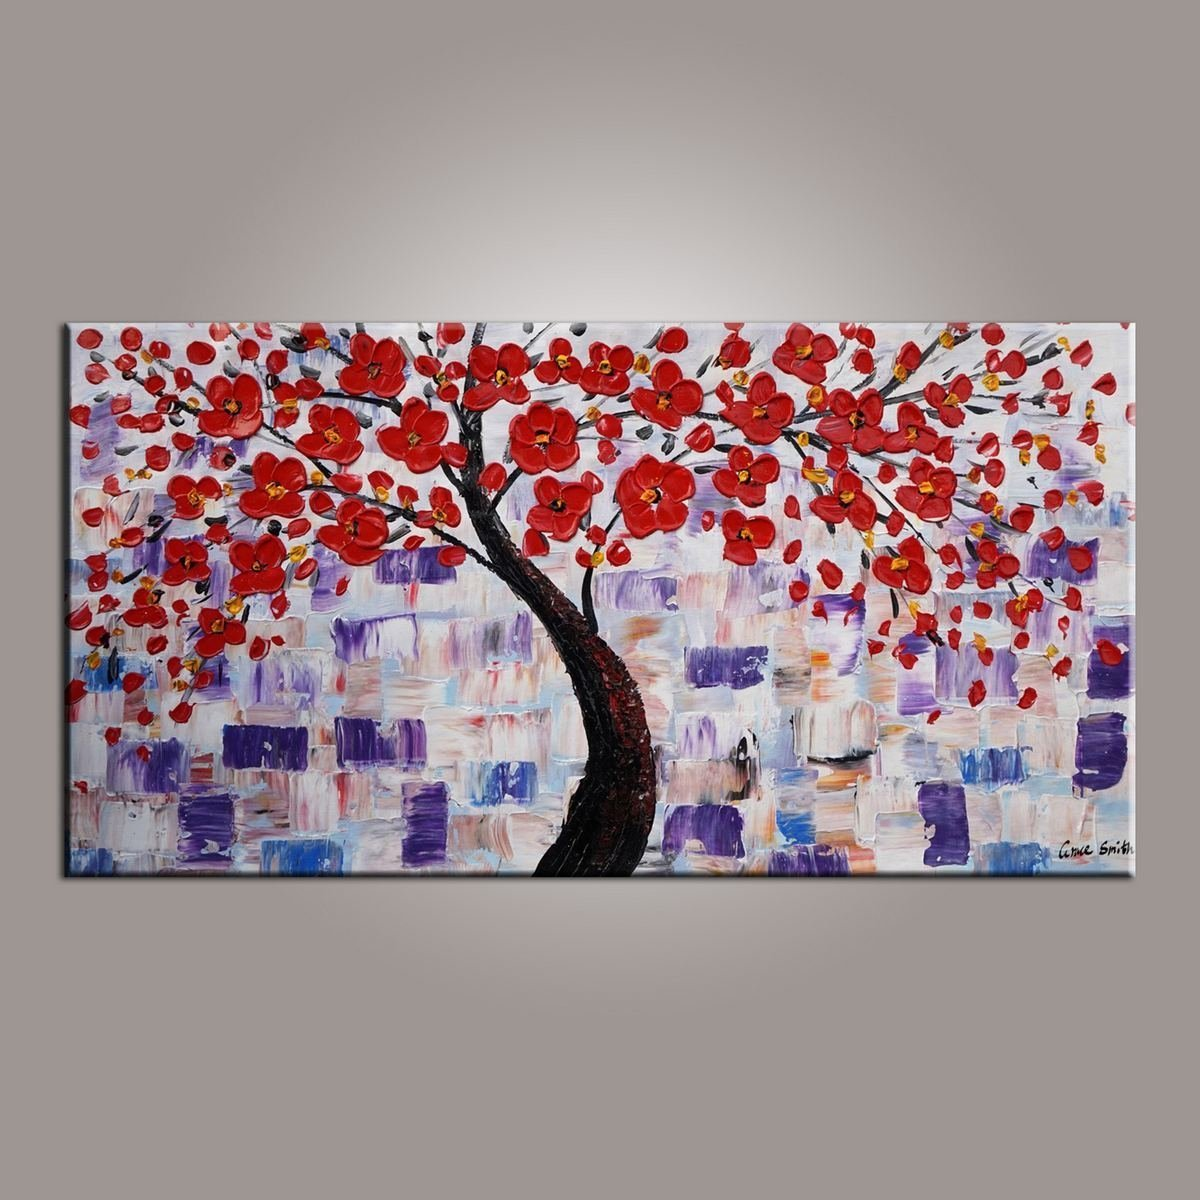 Flower Painting, Tree Painting, Canvas Painting, Modern Art, Canvas Art, Large Art, Original Painting, Abstract Wall Art, Large Wall Art, Abstract Painting, Abstract Art, Canvas Wall Art, Wall Decor